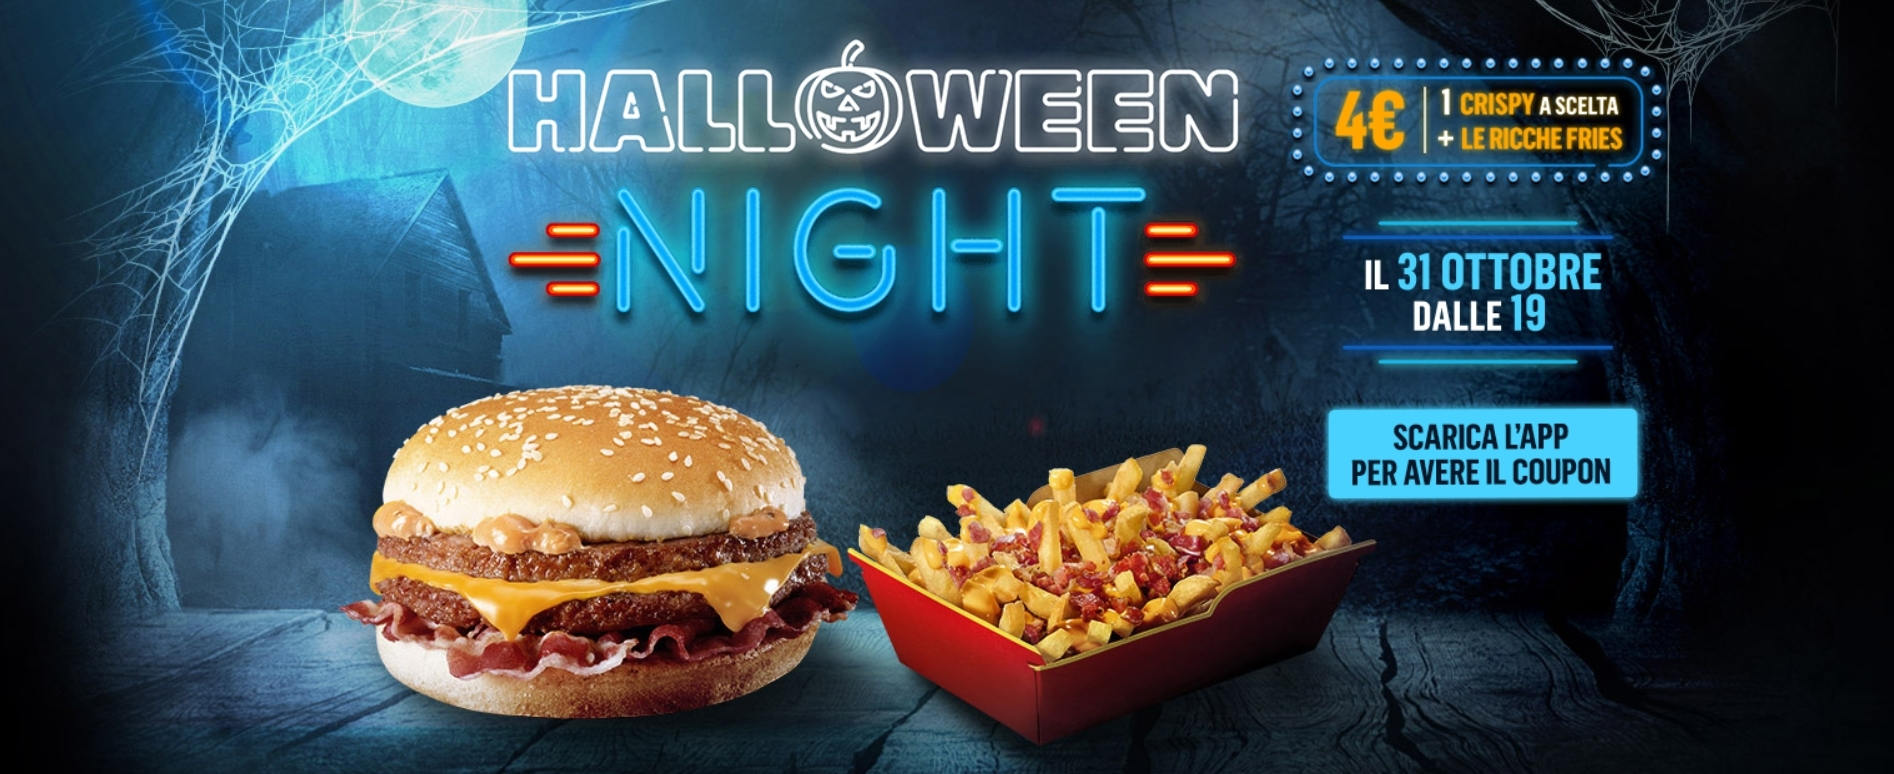 McDonald's Halloween Night